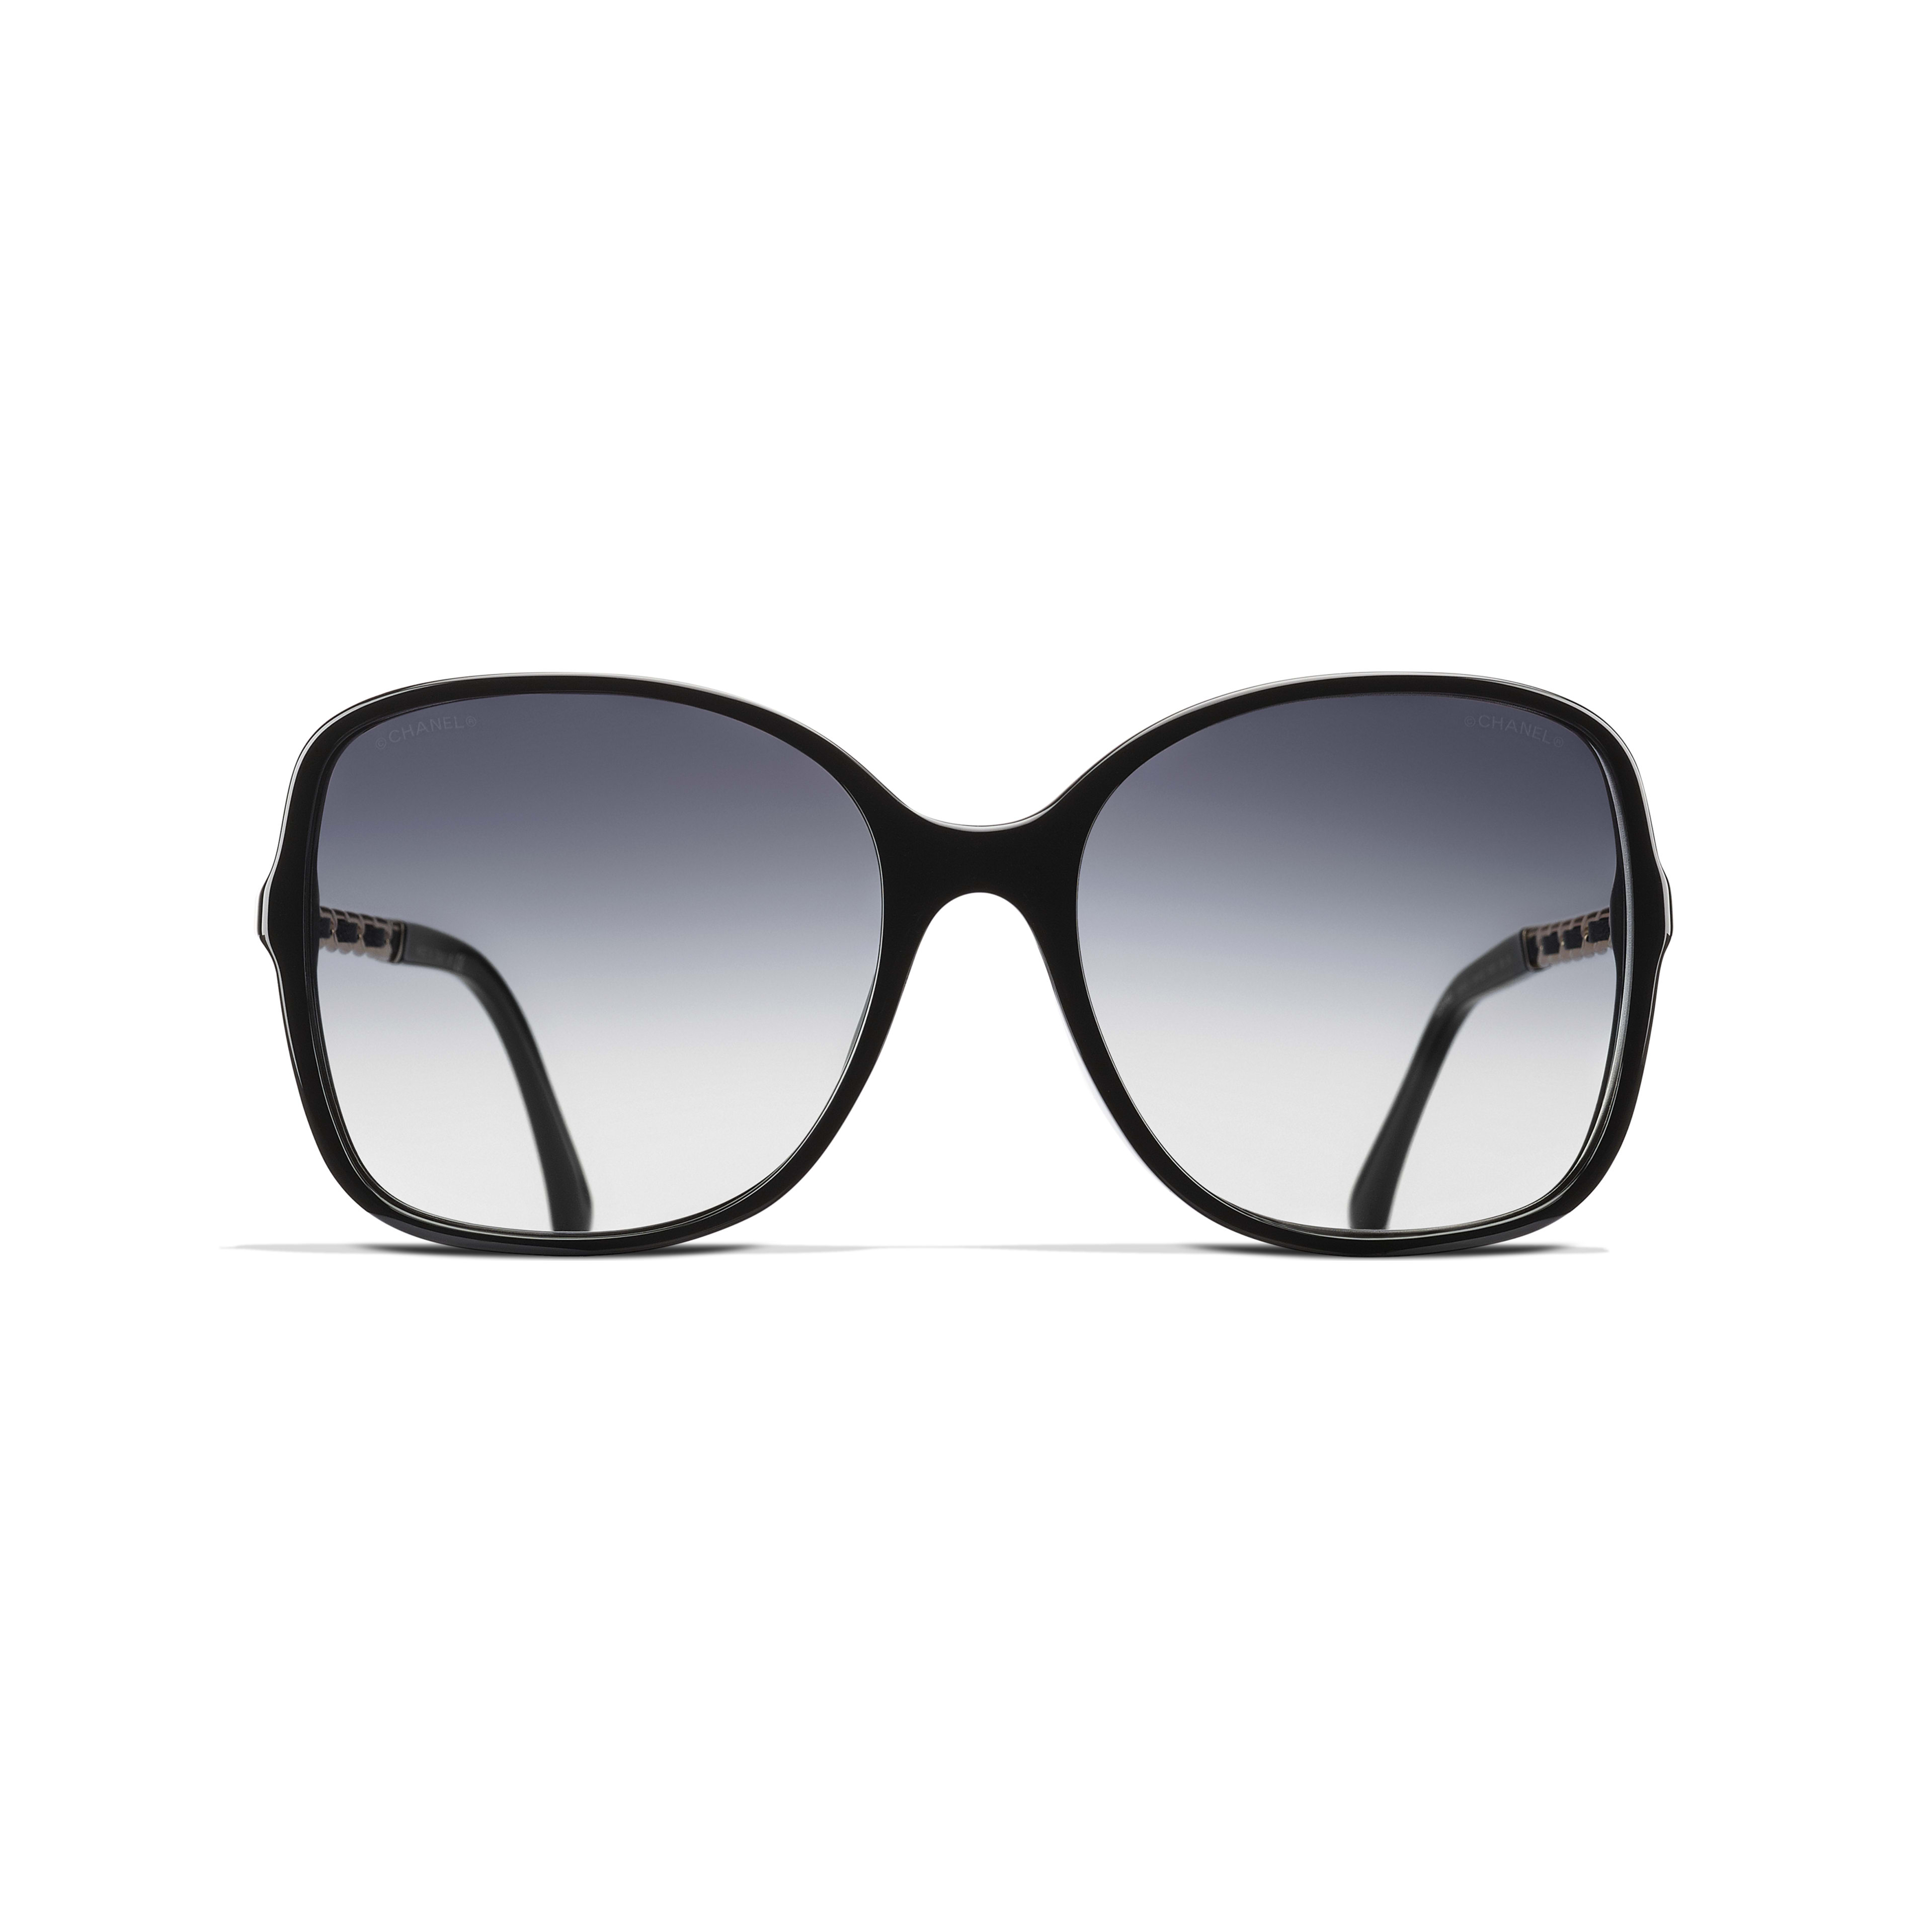 Square Sunglasses Acetate & Lambskin Black -                                                    view 2 - see full sized version